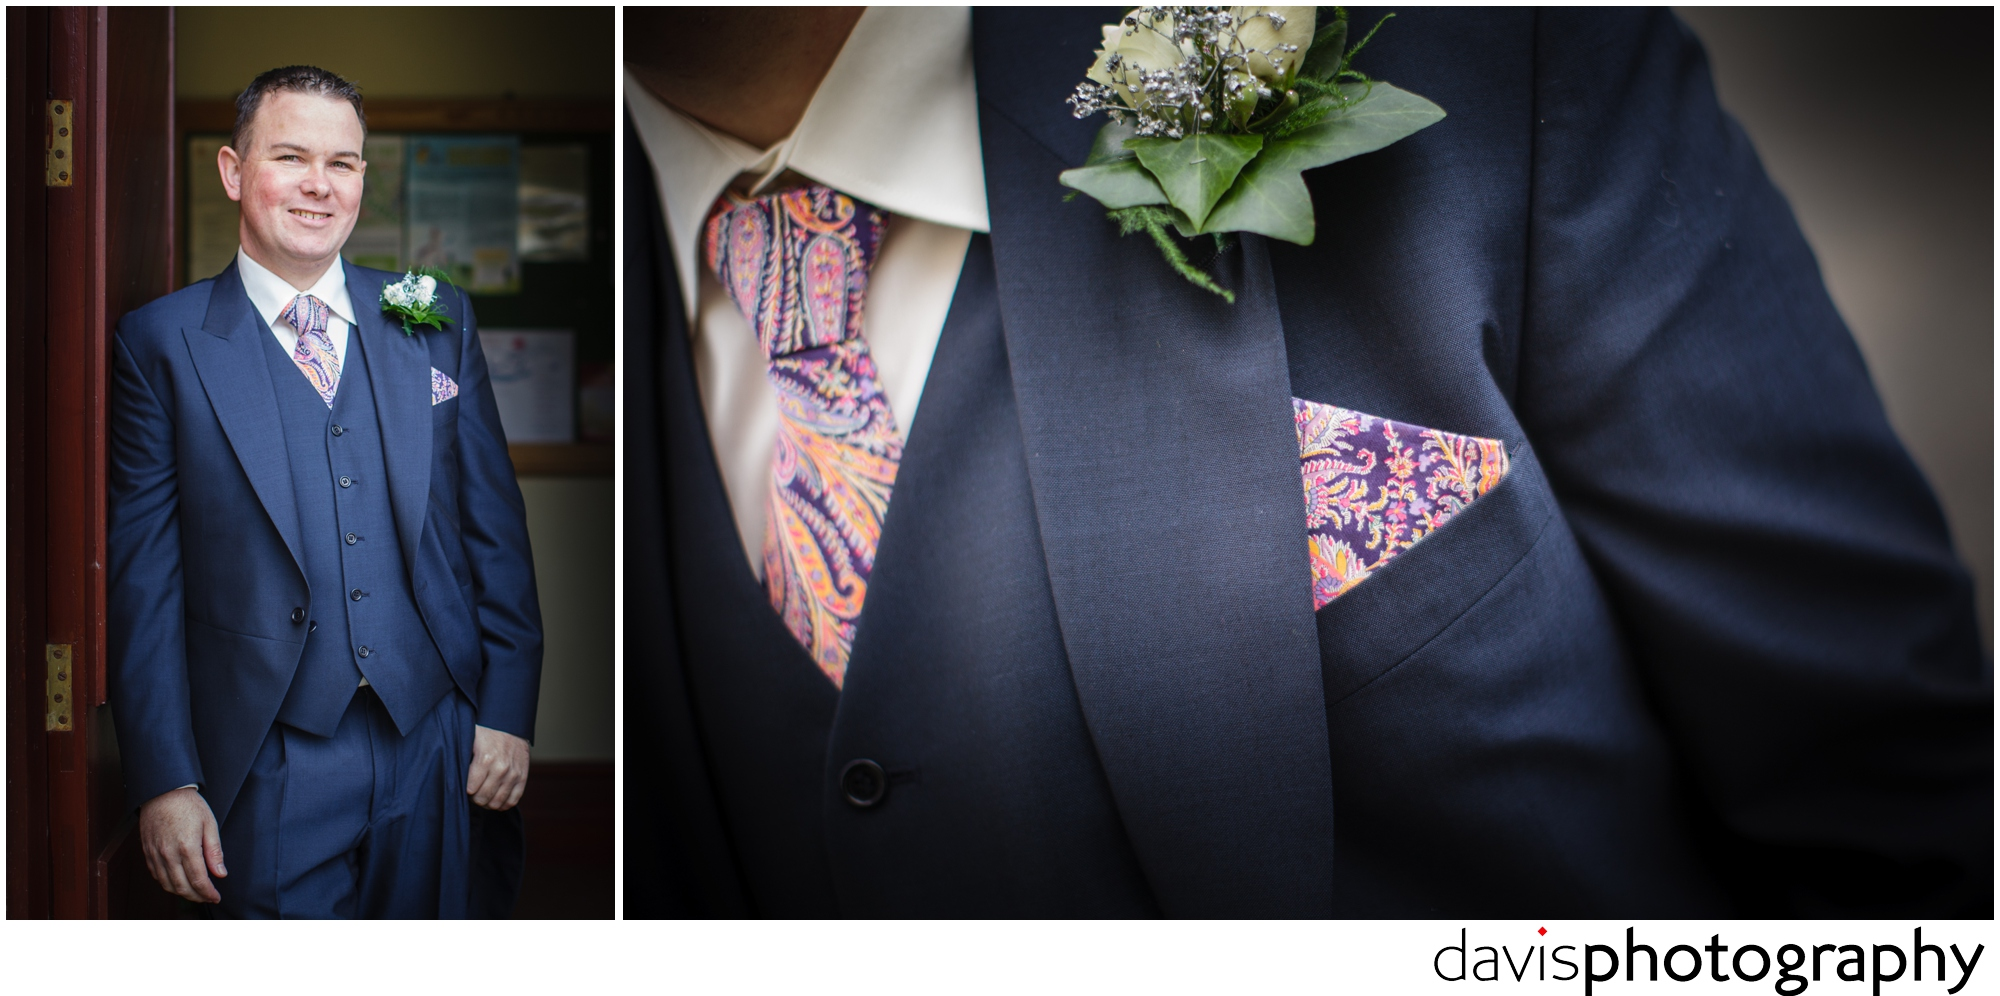 grooms pocket hanky with matching tie